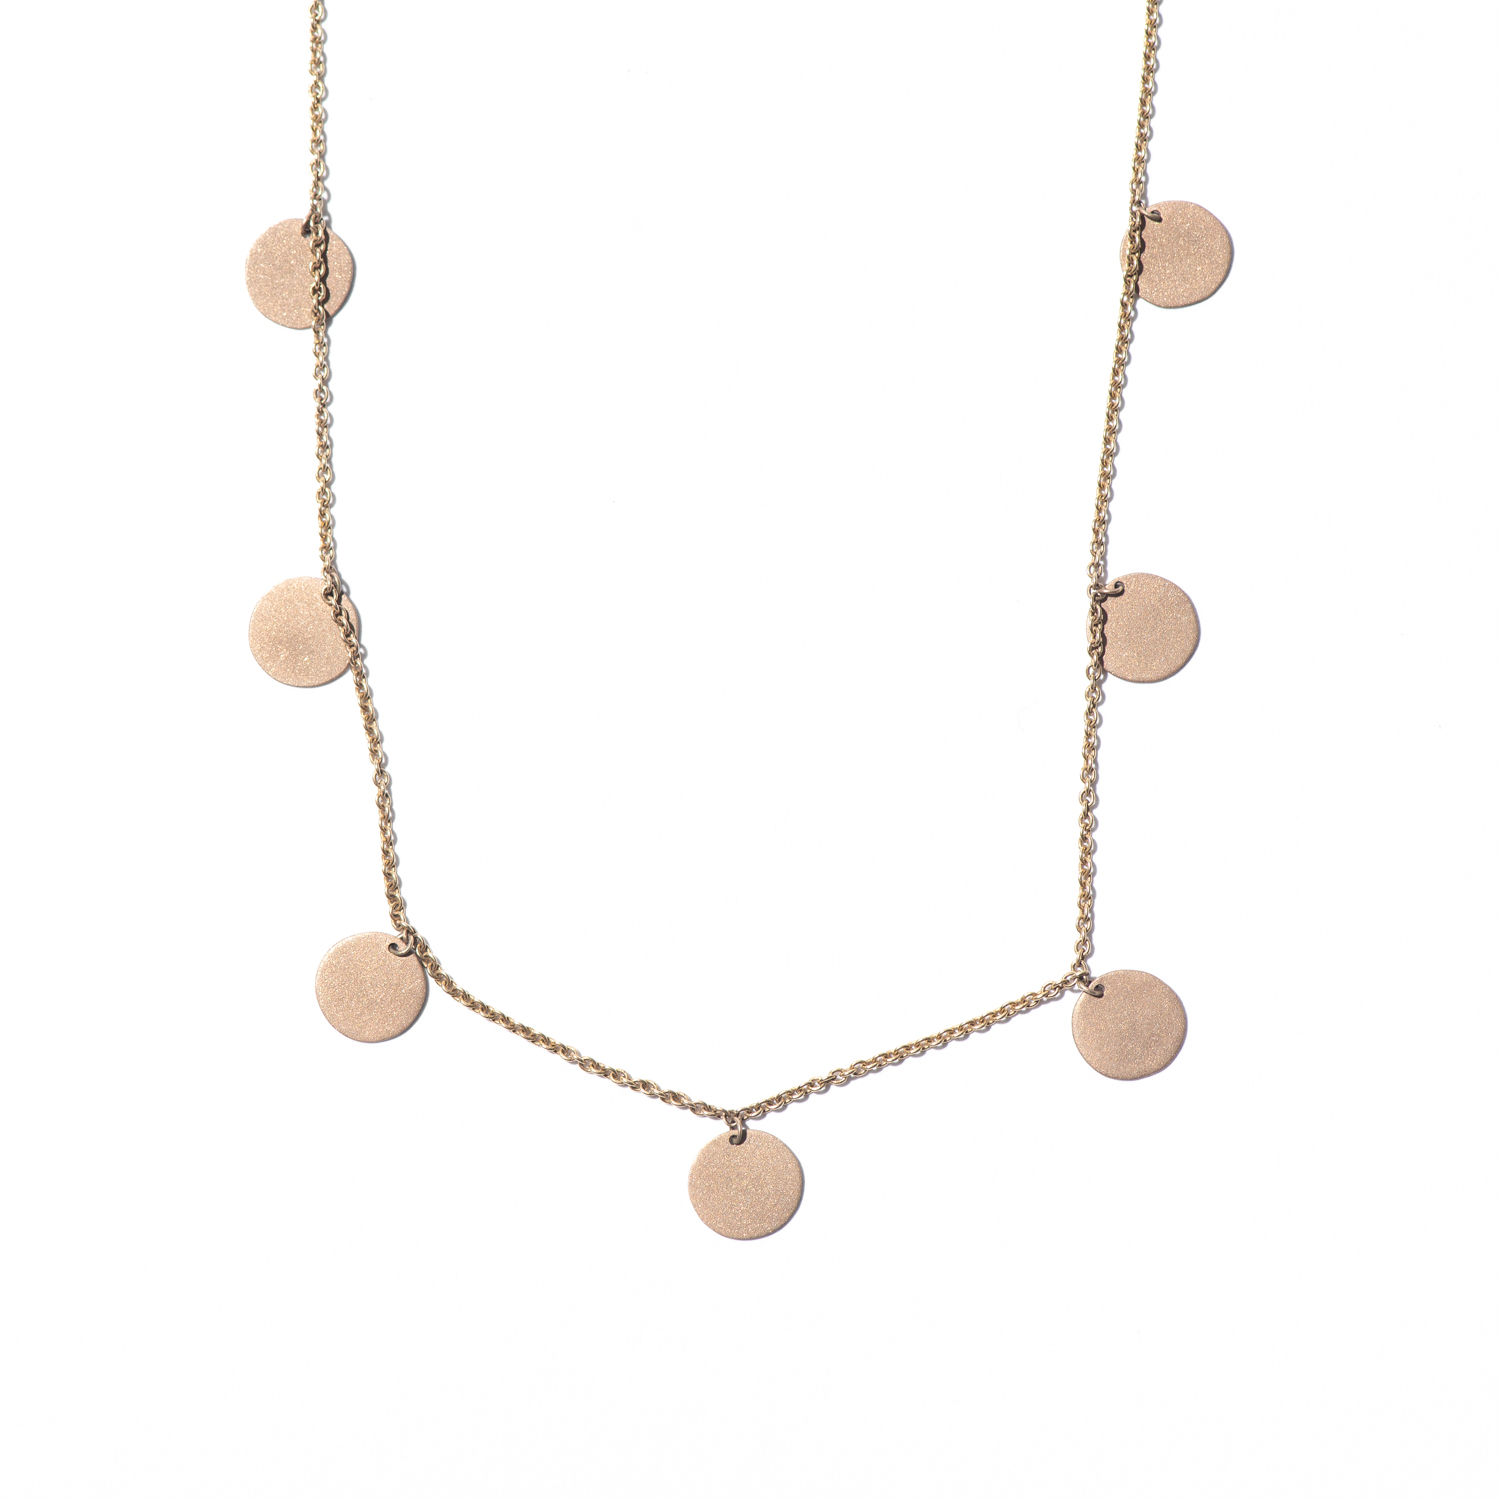 Design Twenty Six. - Satin Finish Rose Gold Charm Necklace